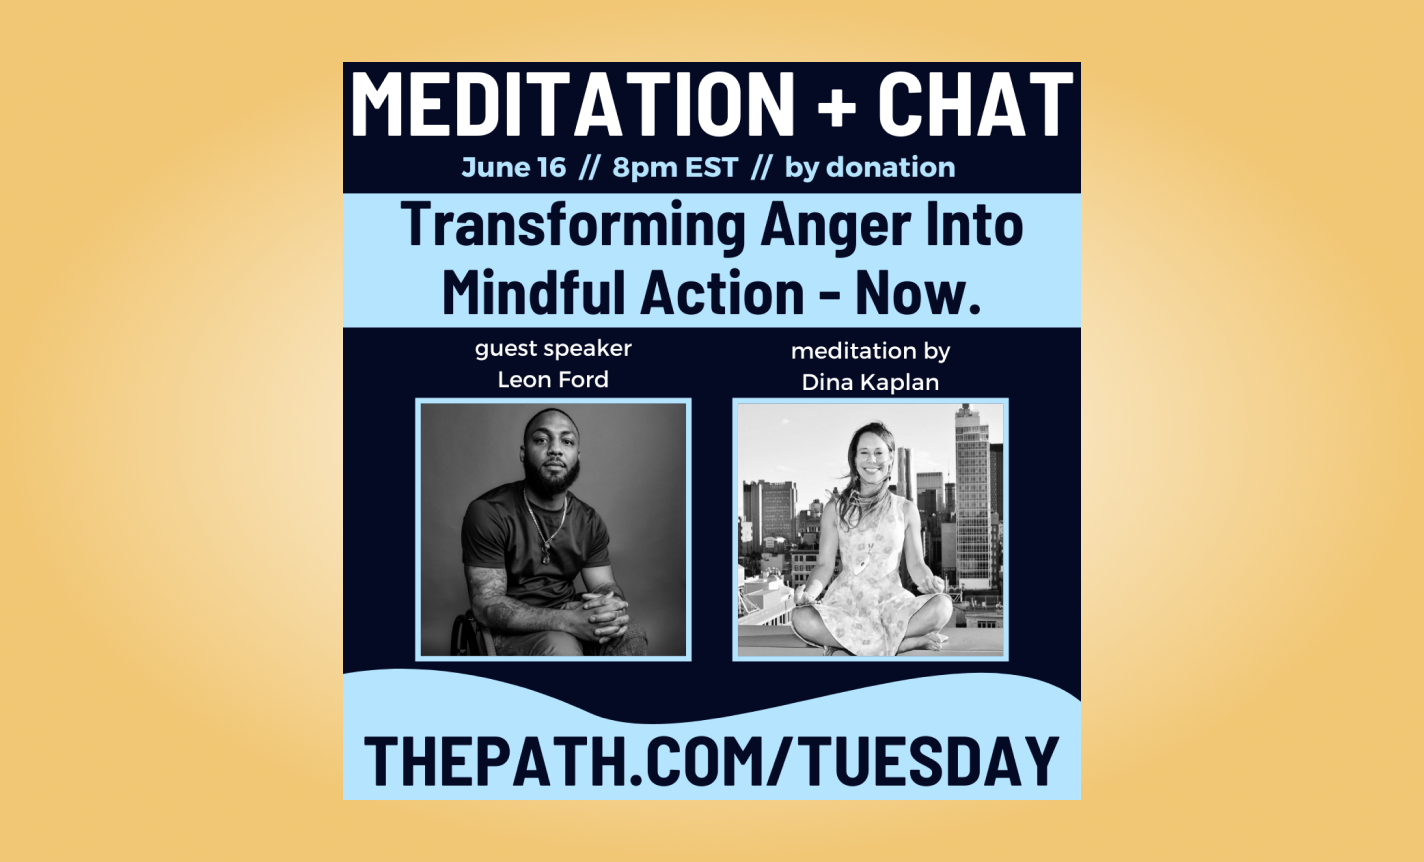 Transforming Anger Into Mindful Action